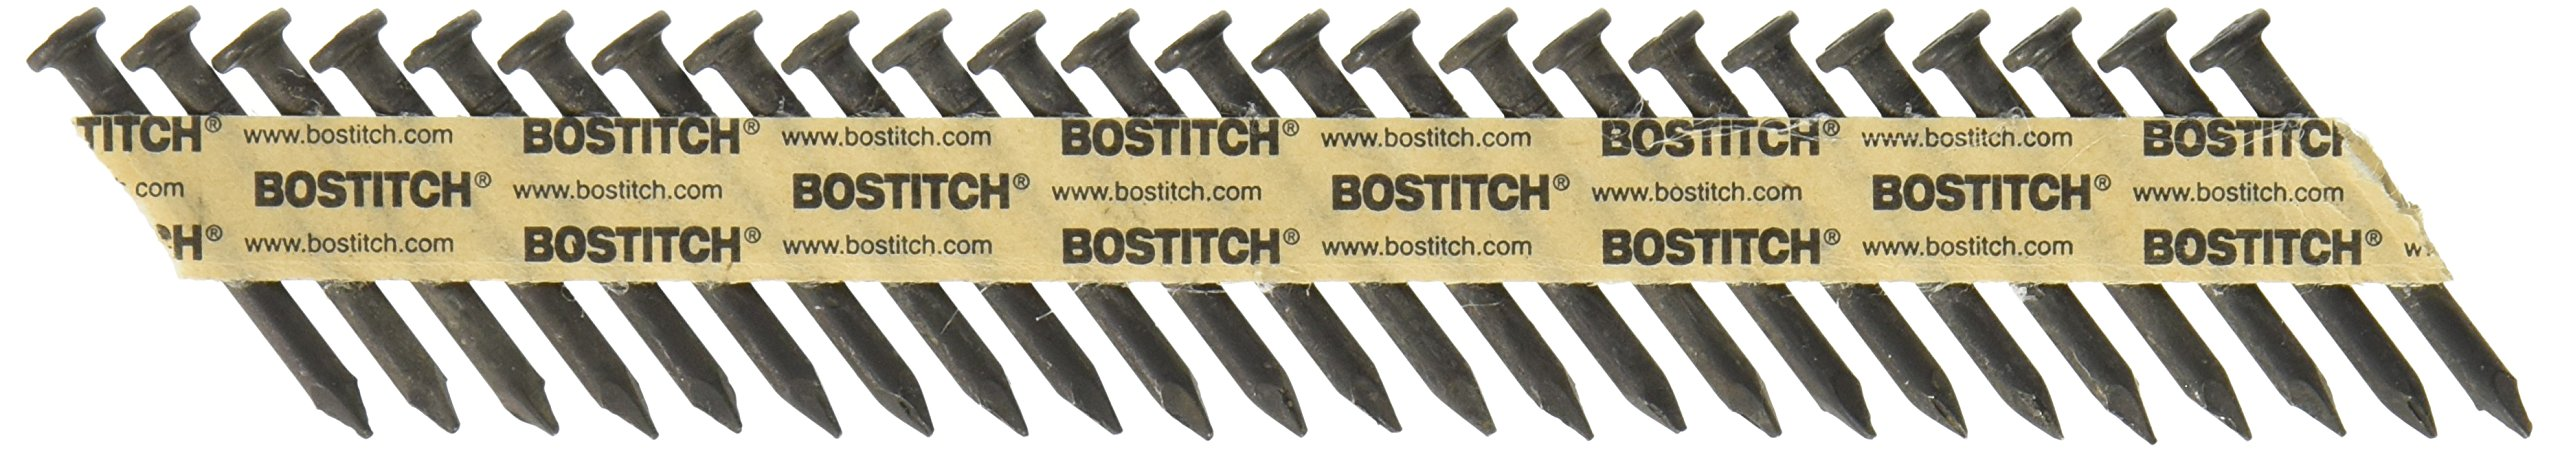 BOSTITCH PT-MC14815-1M 1 1/2-Inch x .148 Paper Tape Collated Metal Connector Nails (1,000 per Box)